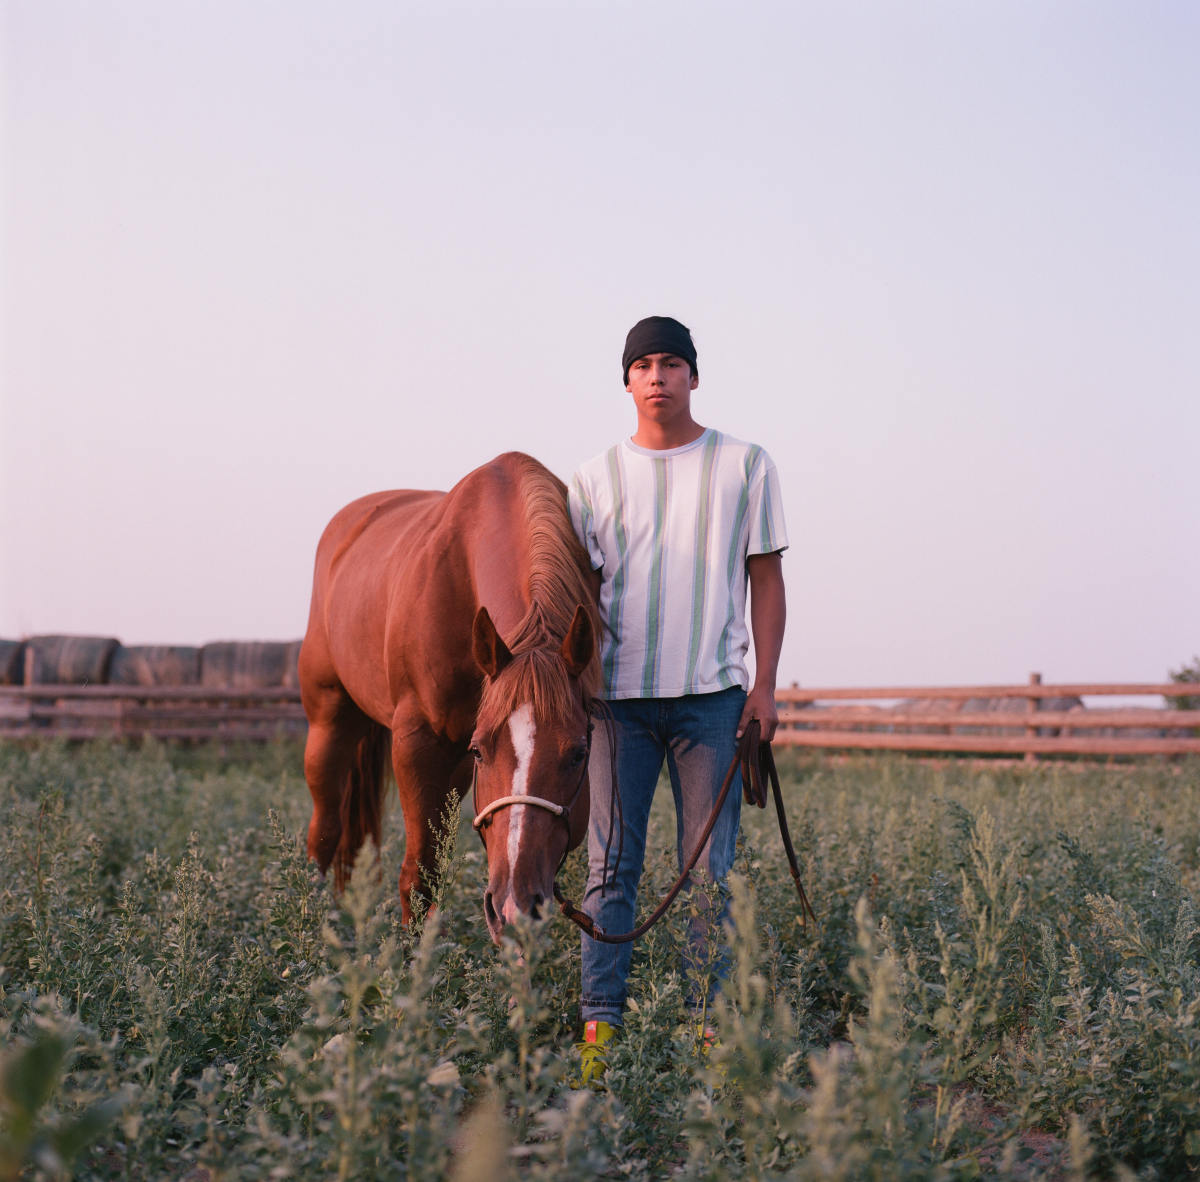 Maize Two Bears, 16 - Skateboarder, Horse Rider, and Rodeo Bull Rider. (Photo: Brian Adams)